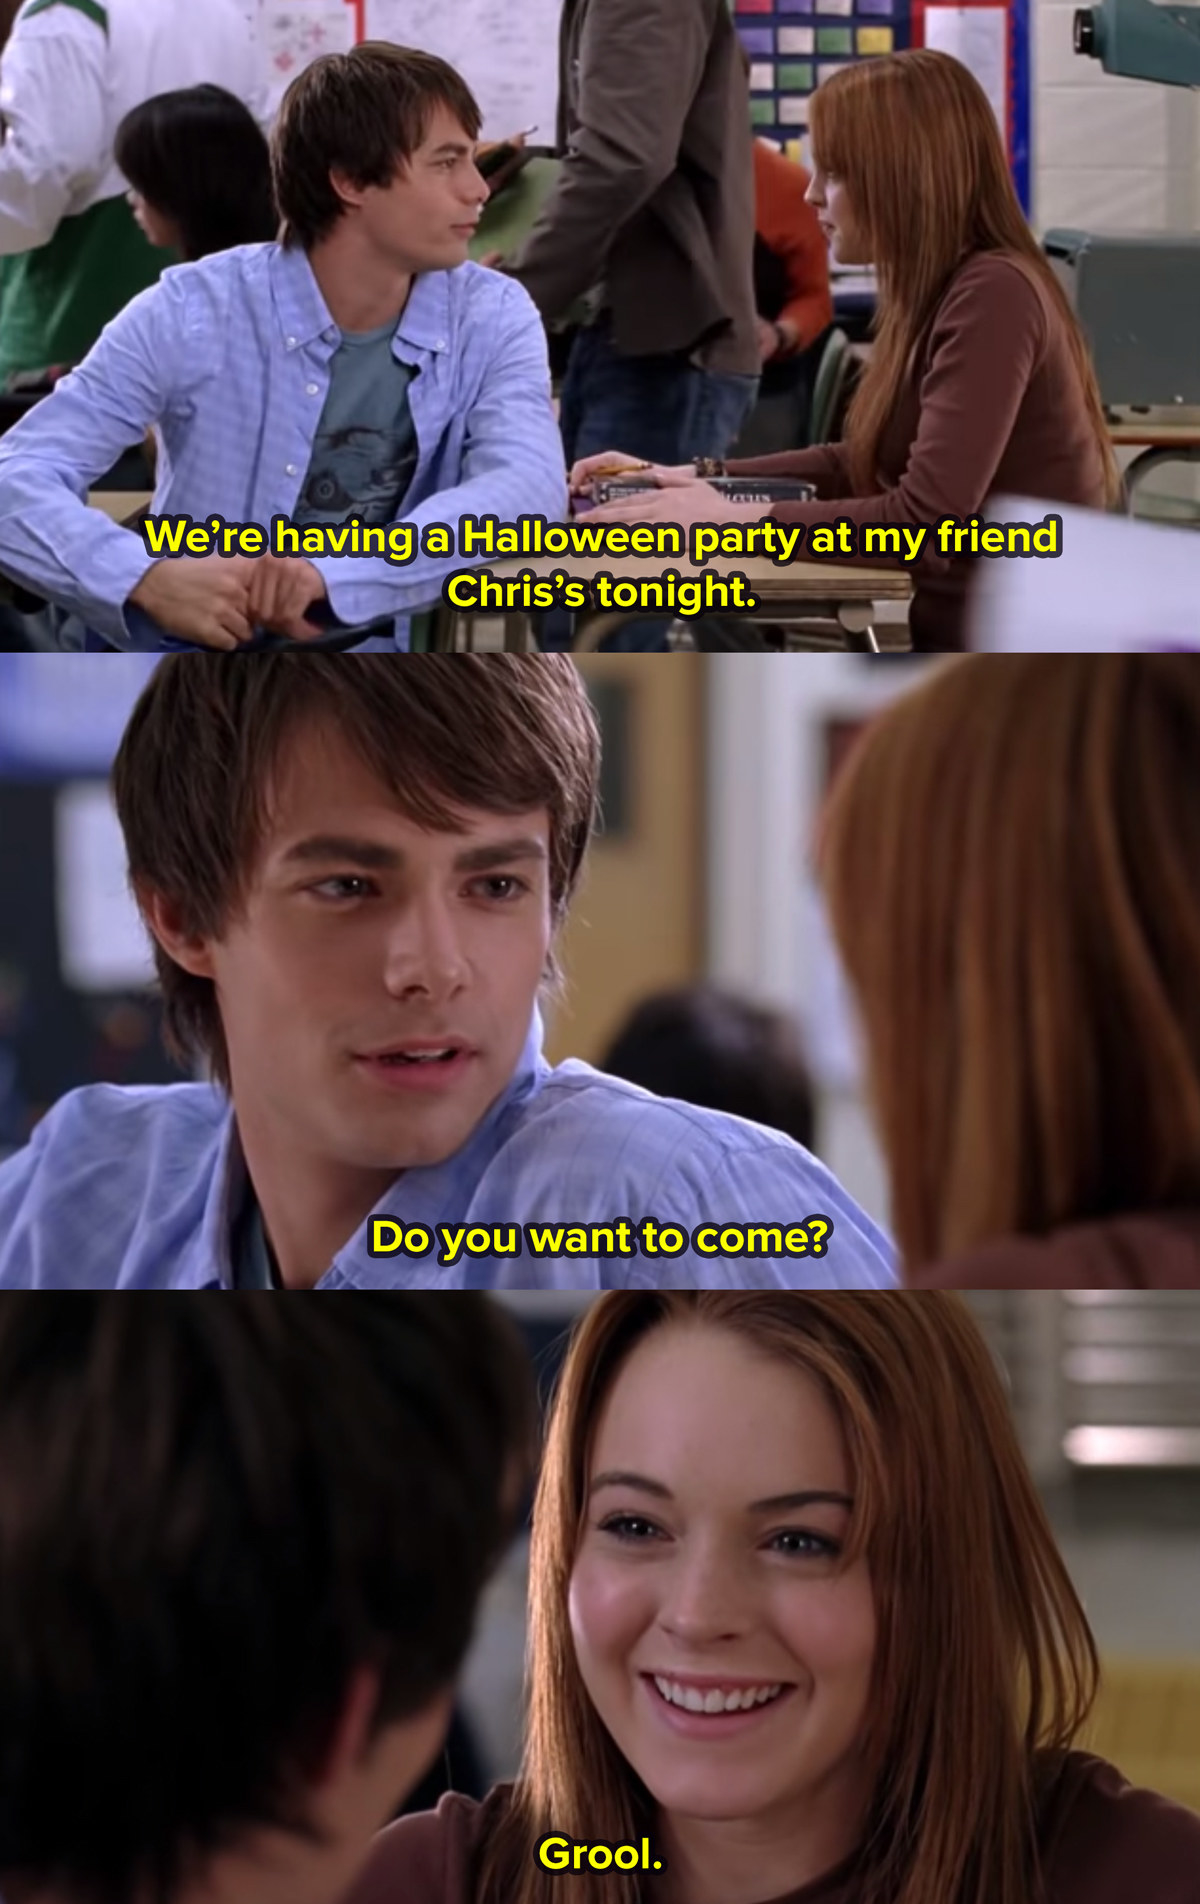 A stacked image showing Aaron Samuels turning around in class to talk to Cady Herron in Mean Girls. He says we're having a Halloween party at my friend Chris's tonight do you want to come, and replies grool